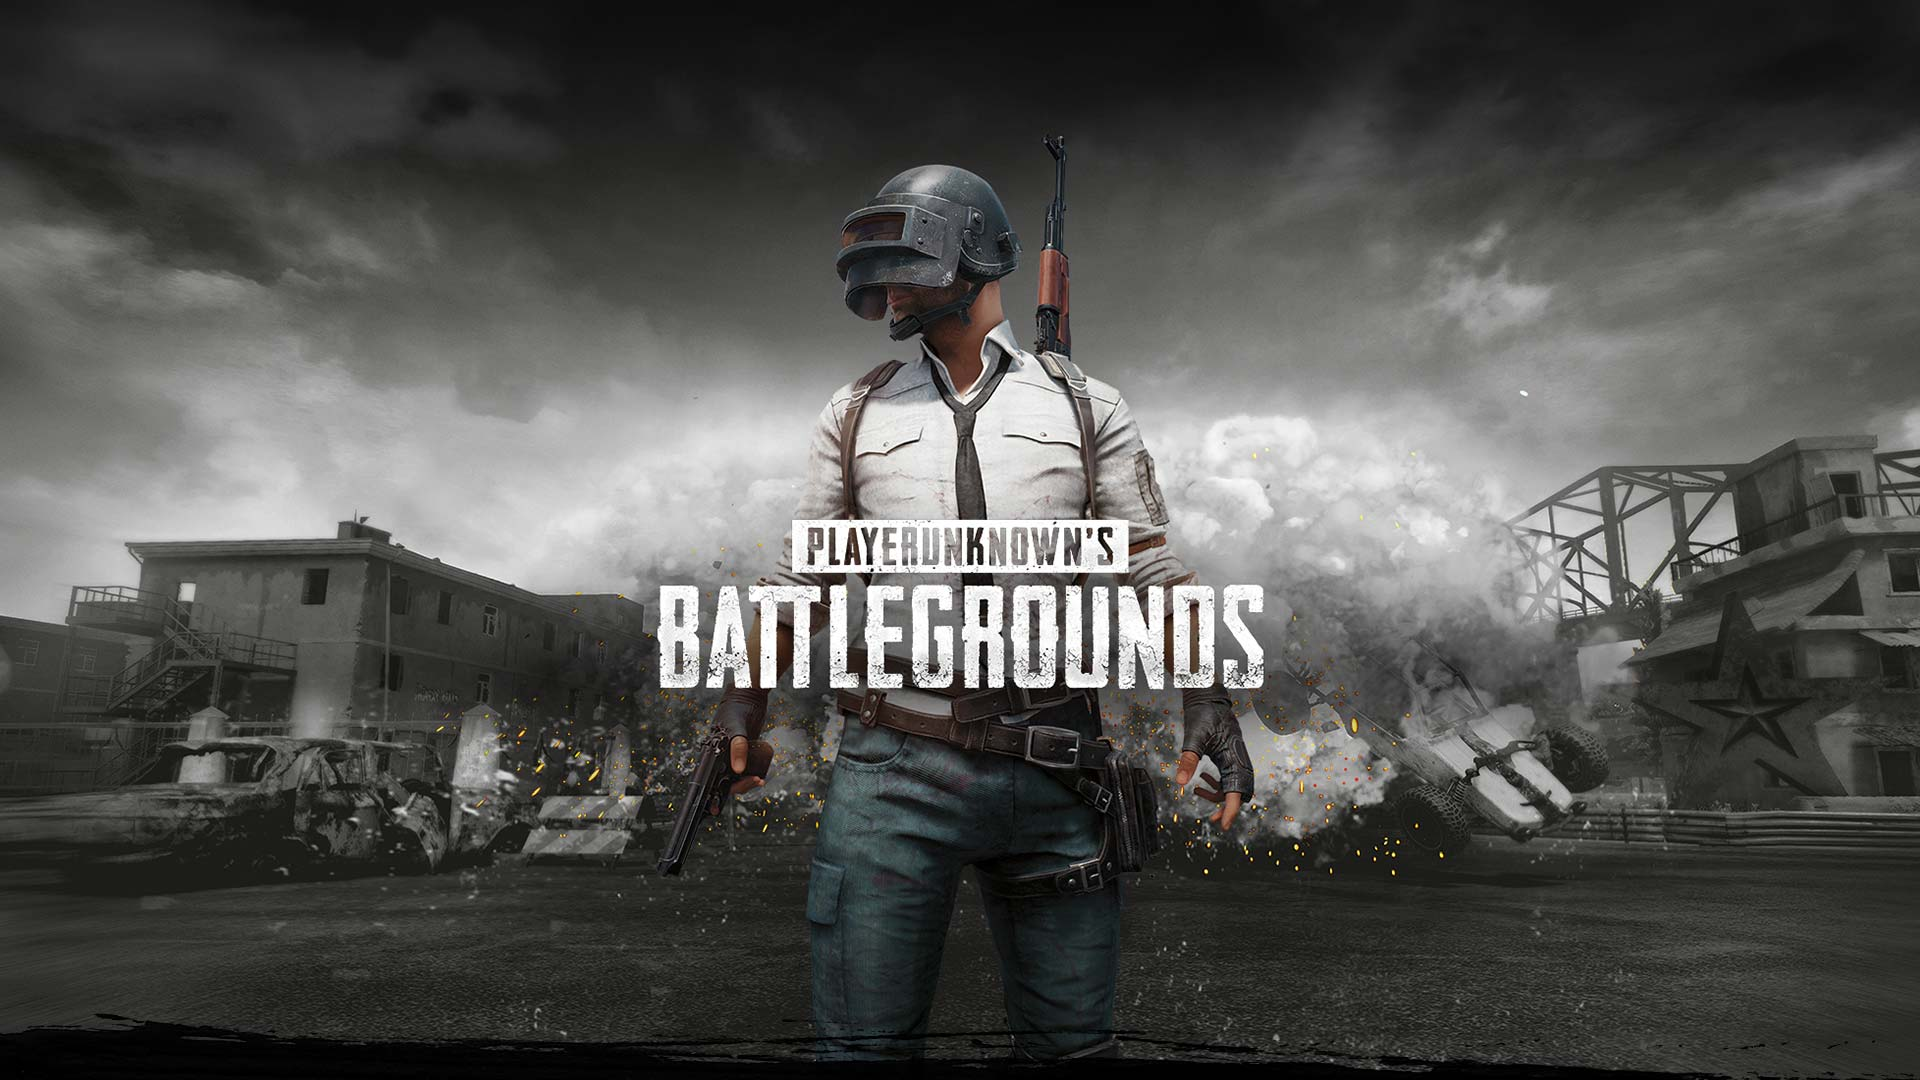 Pubg Multiplayer Playerunknown S Battlegrounds For Xbox One Xbox